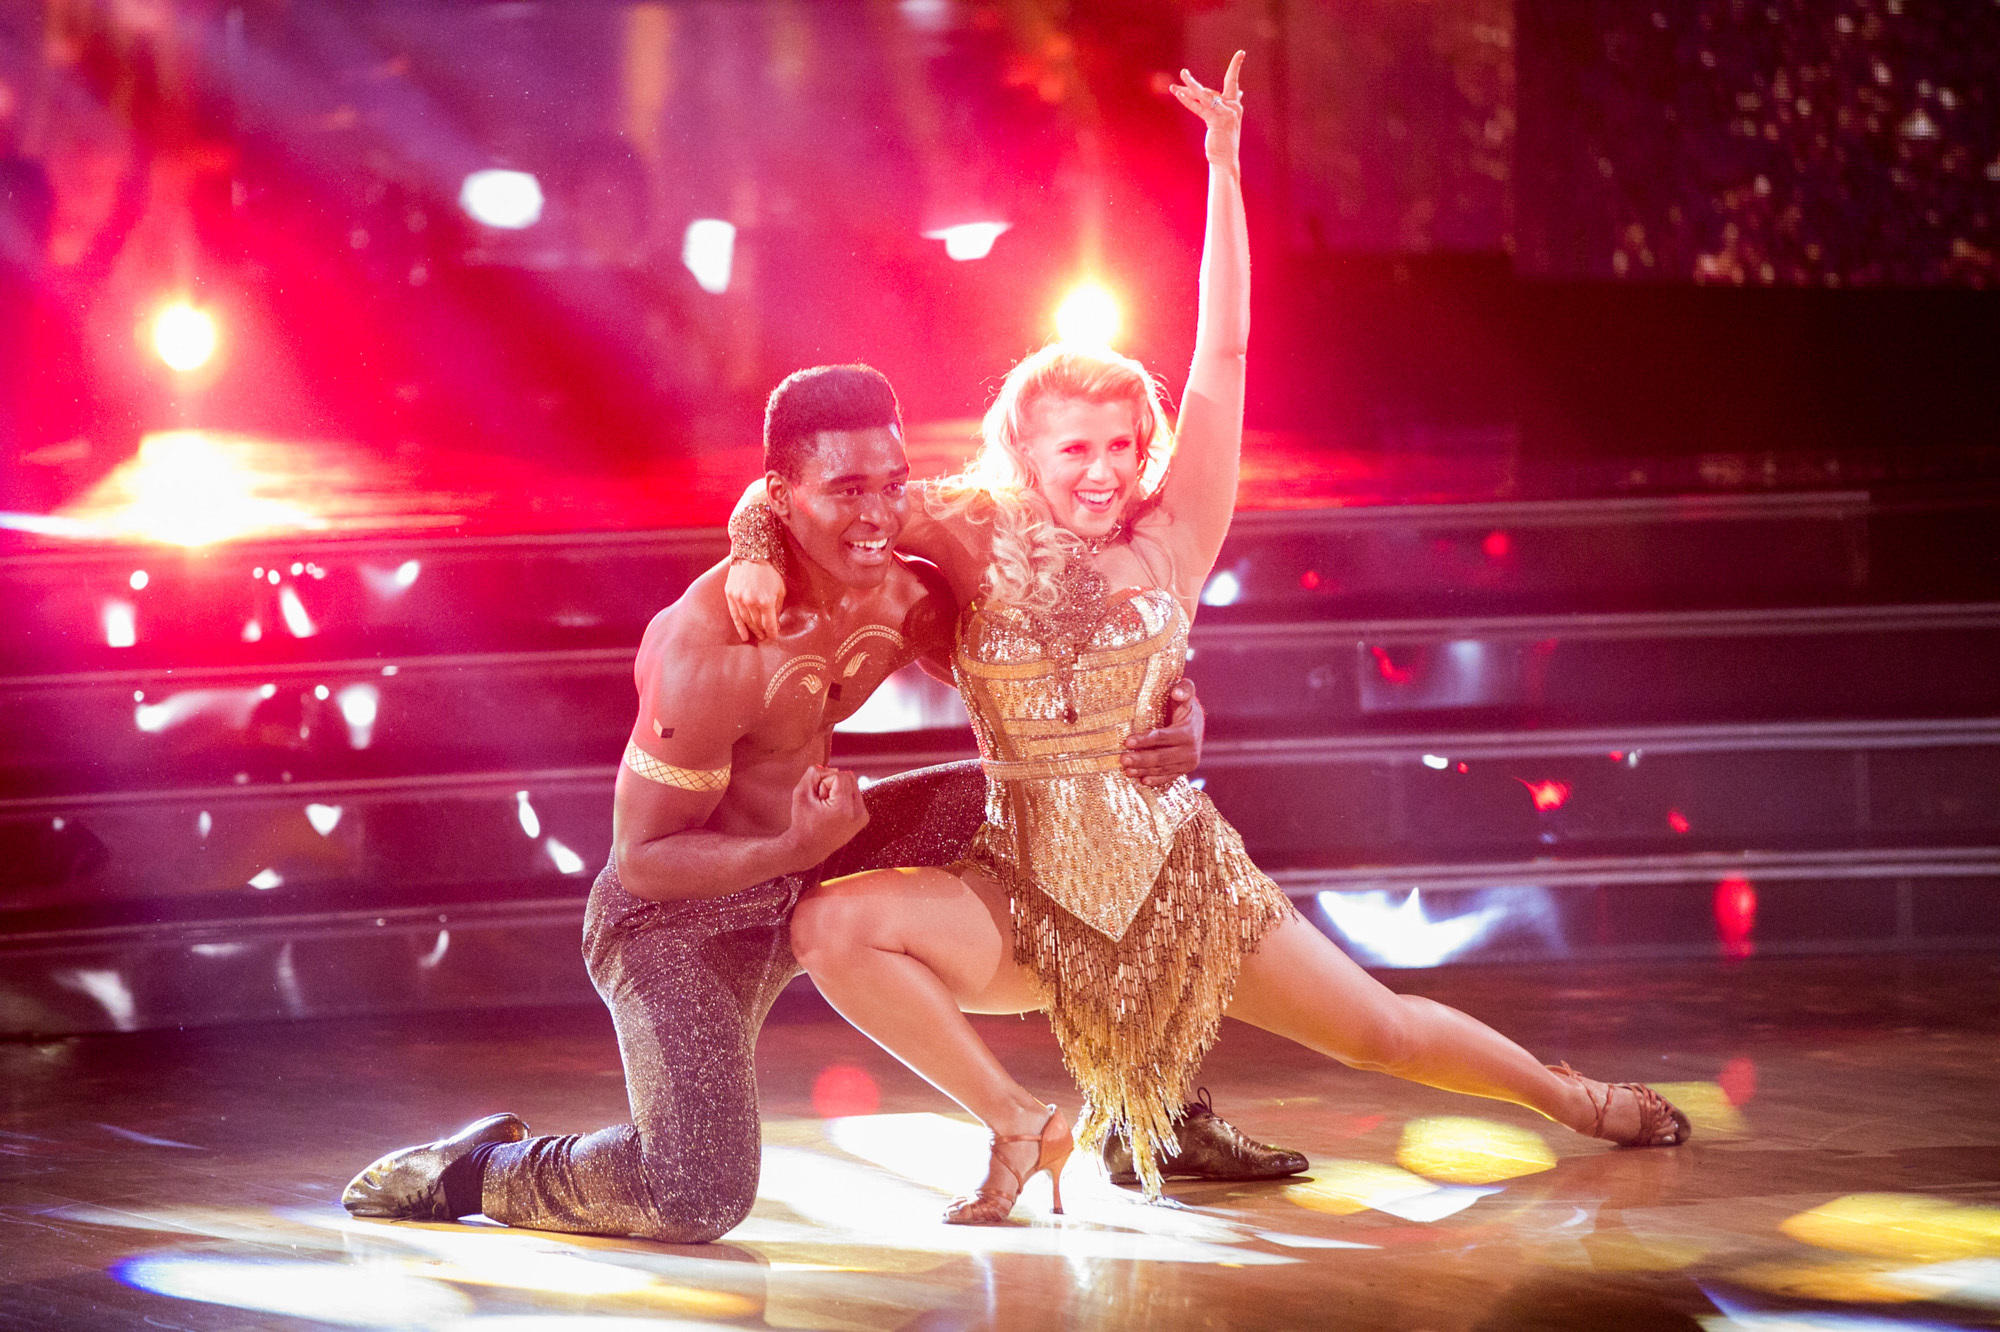 Dancing With The South African Star: Keo Motsepe | KNKX